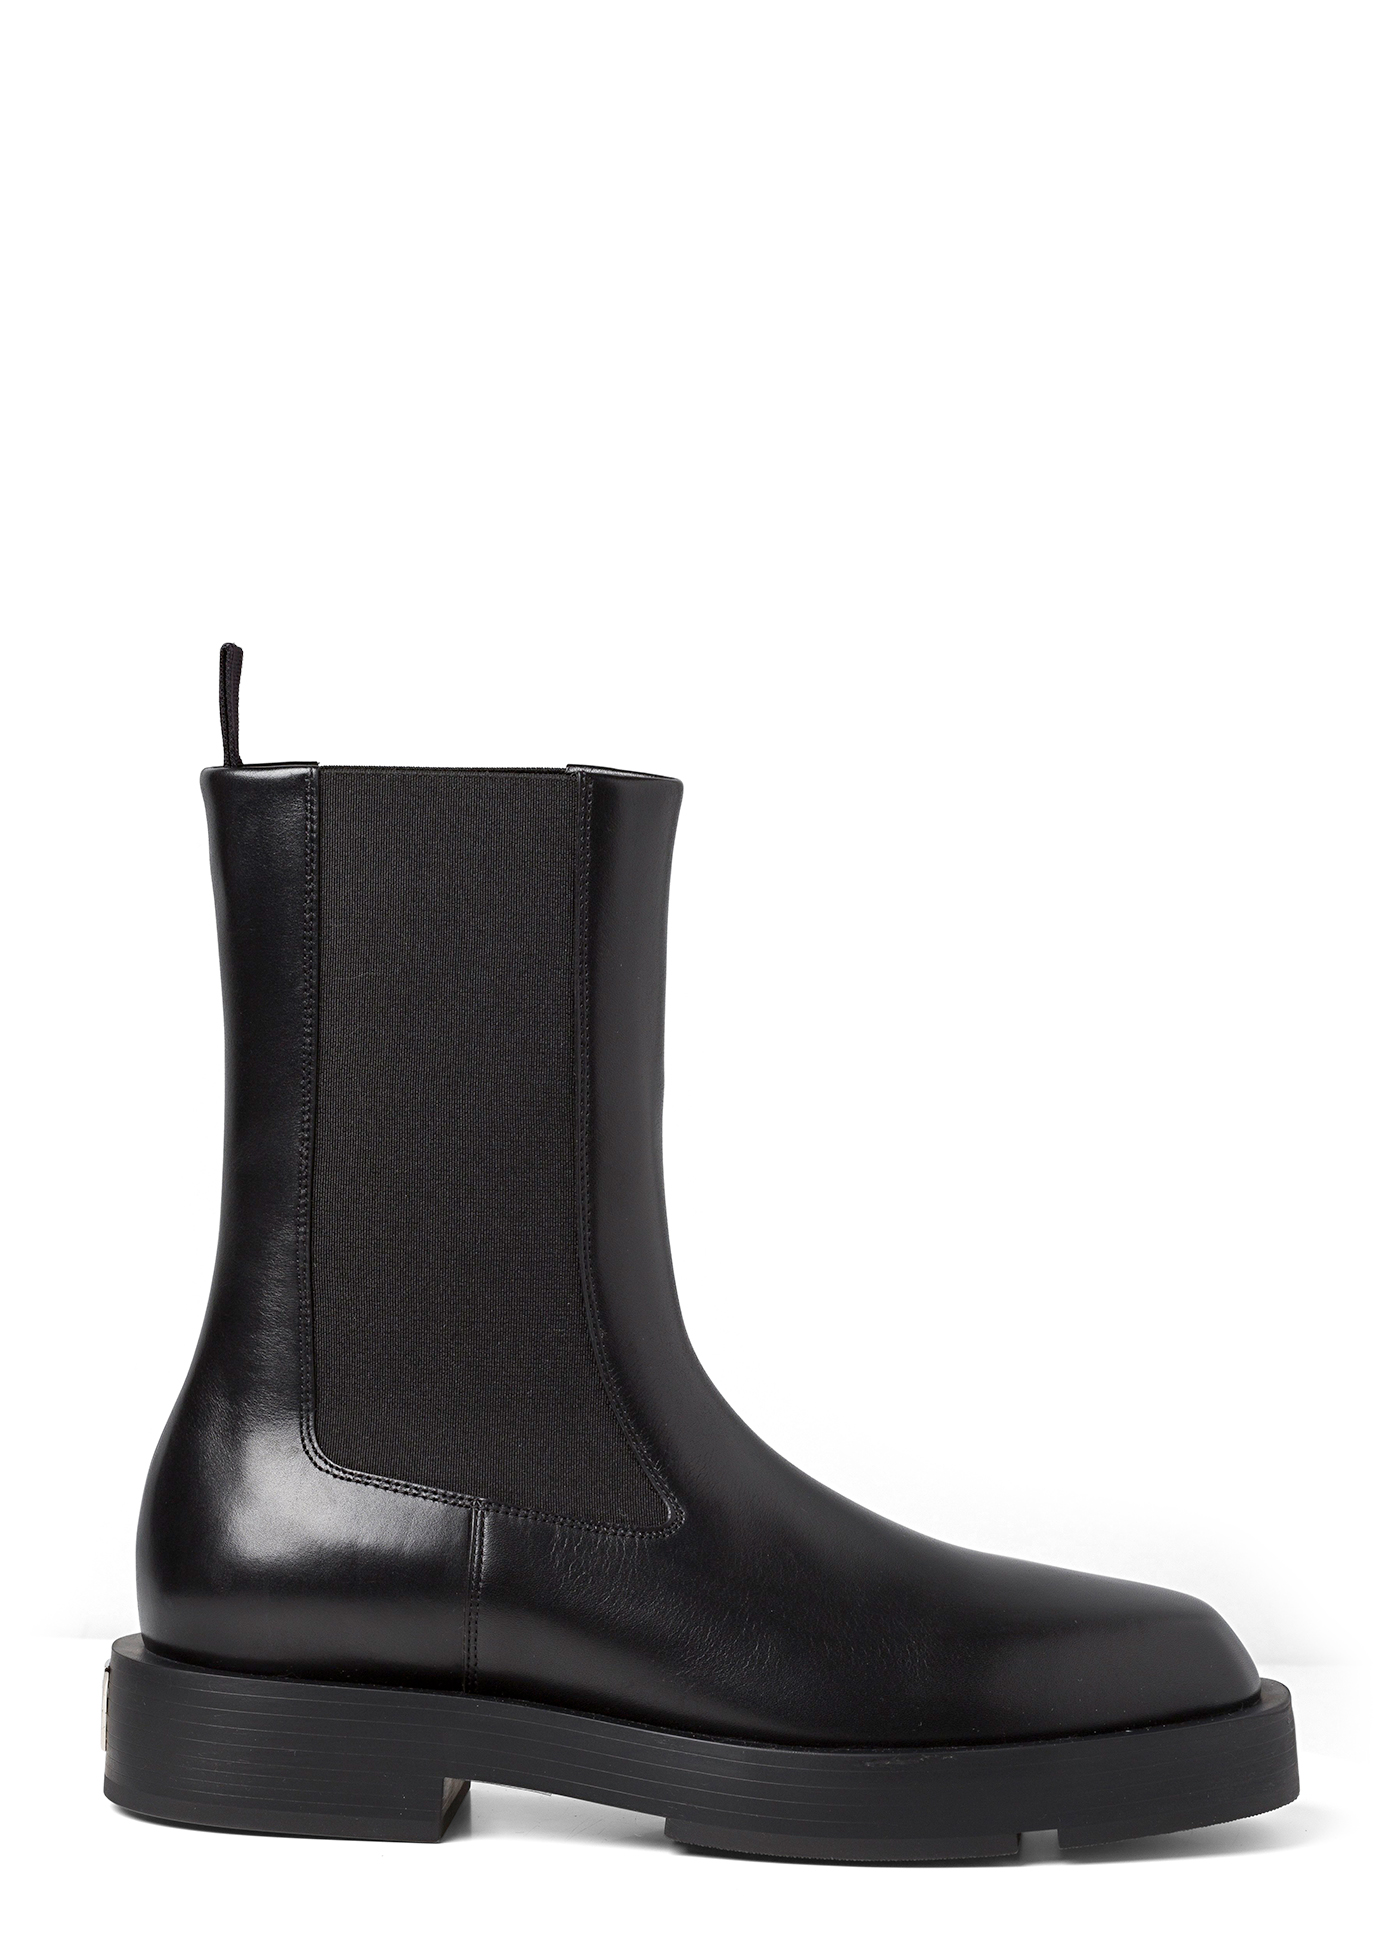 SQUARED FLAT CHELSEA ANKLE BOOT image number 0